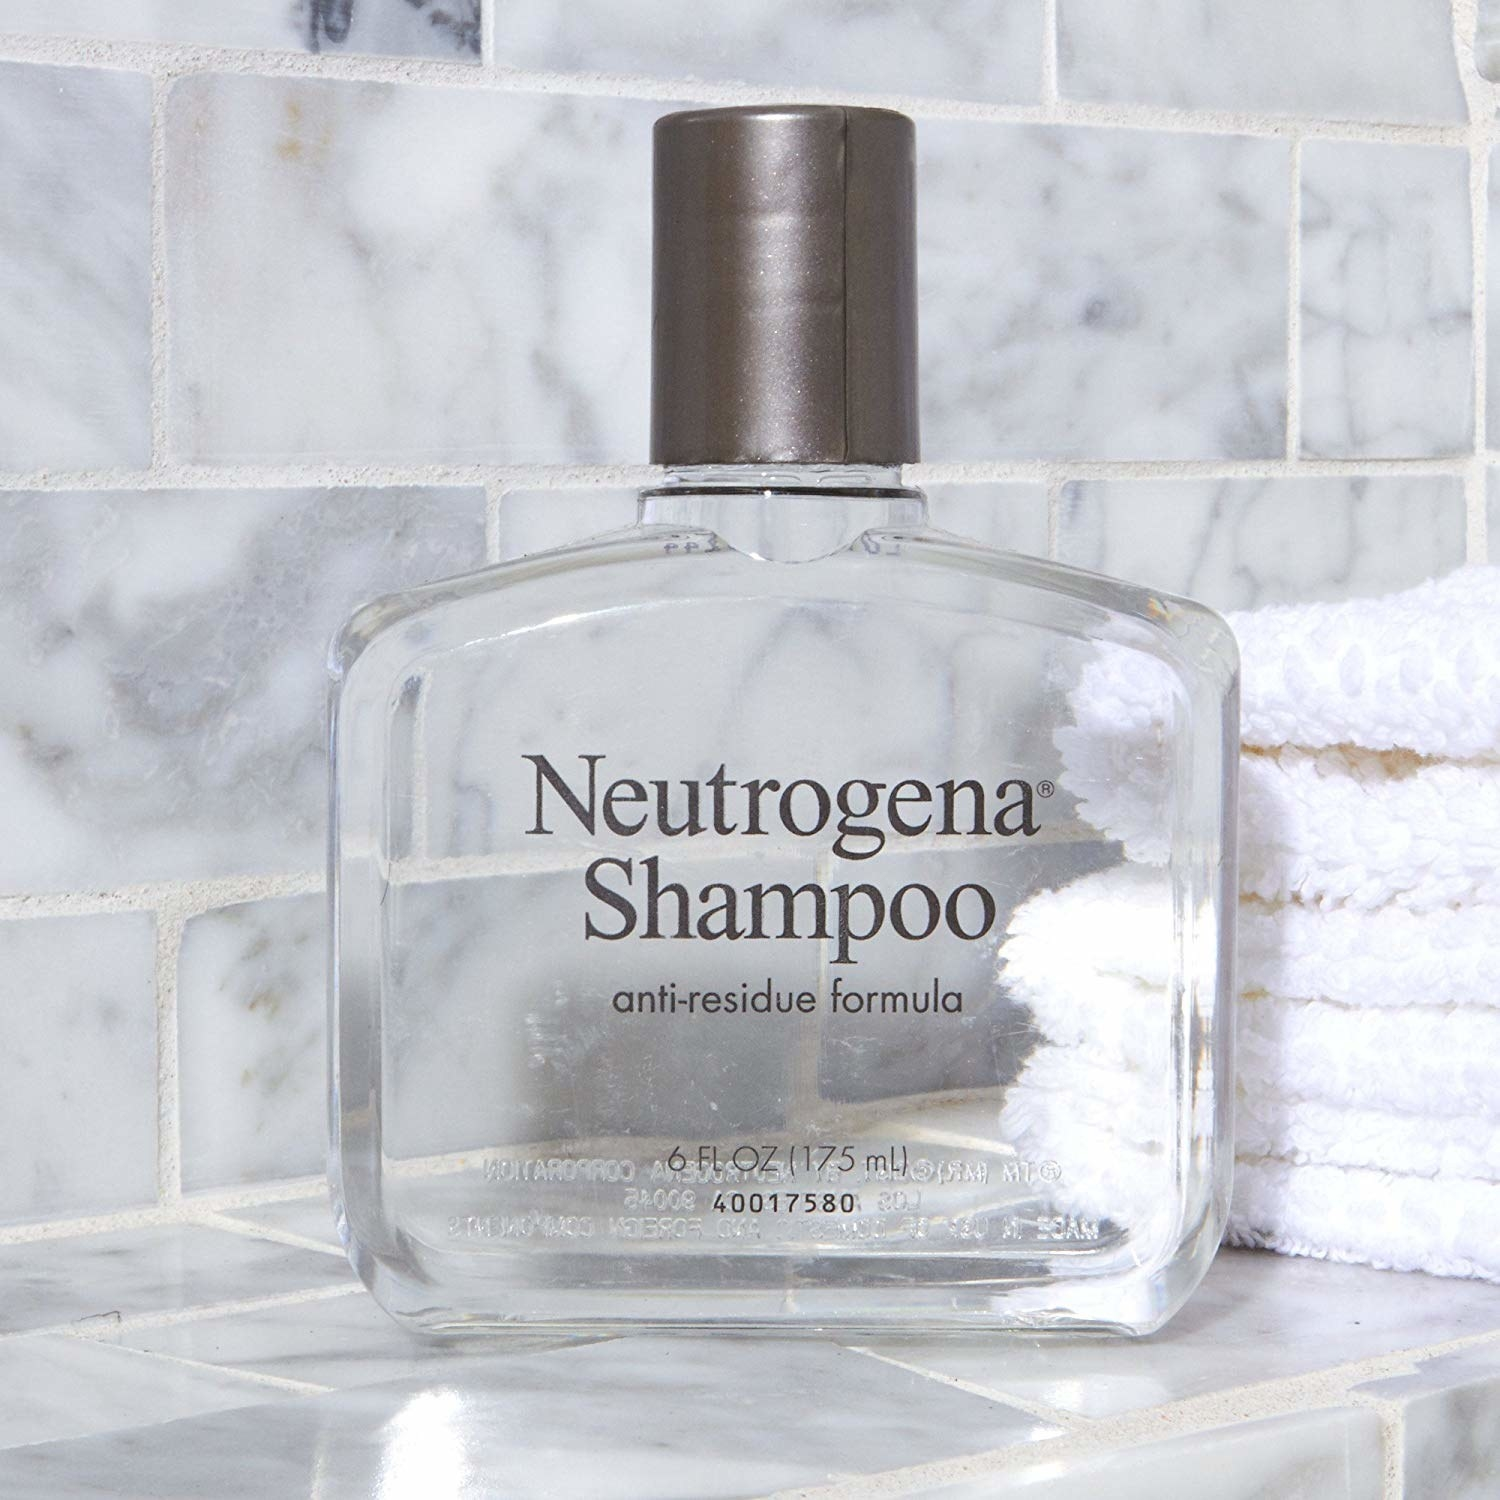 The bottle of anti-residue shampoo